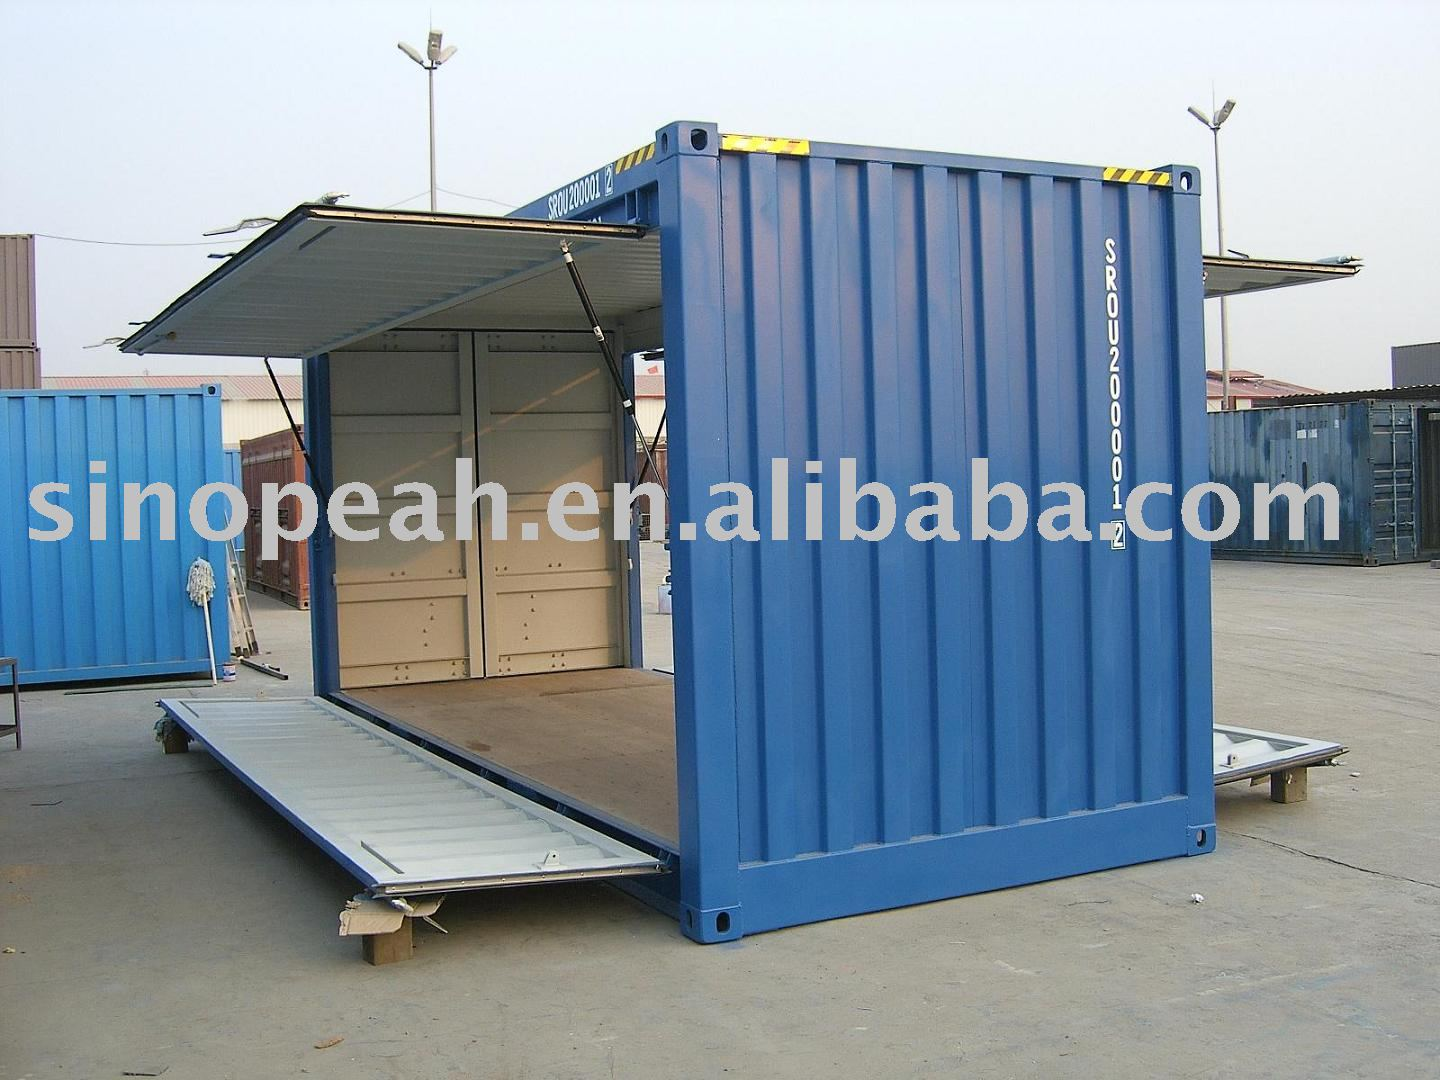 20ft Swing Door Shipping Container Wholesale Container Suppliers